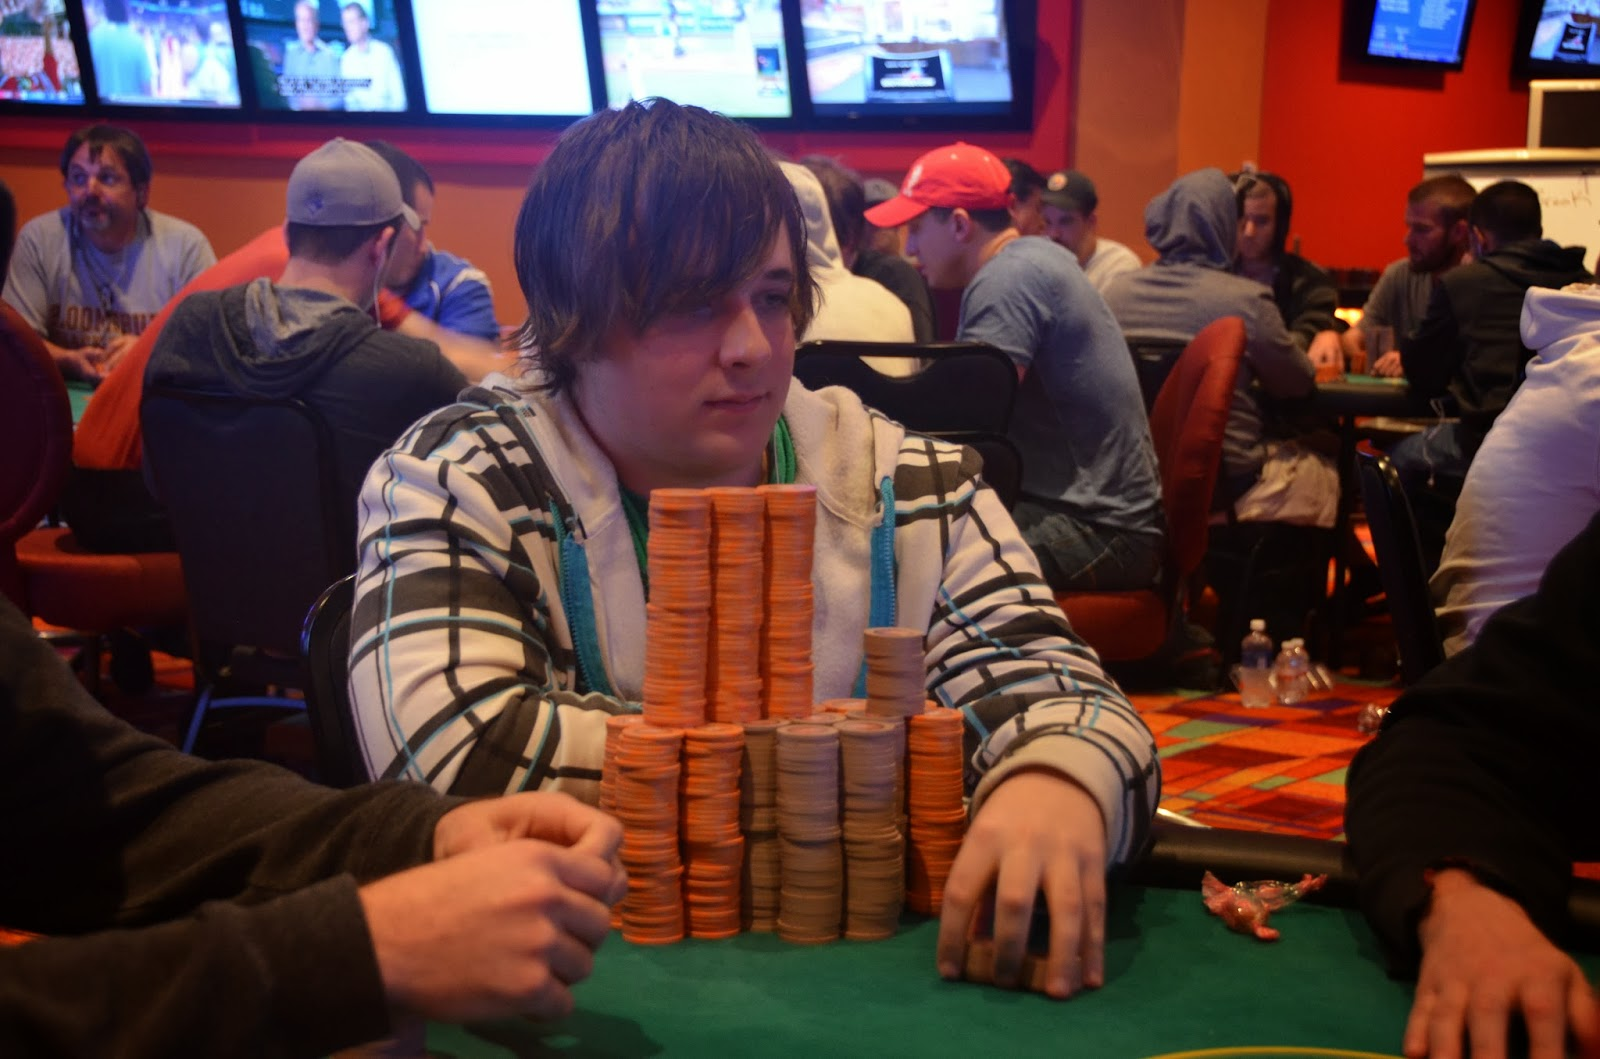 Parx big stax iv big stax 300 day 2 leading the way for Parx poker room live game report